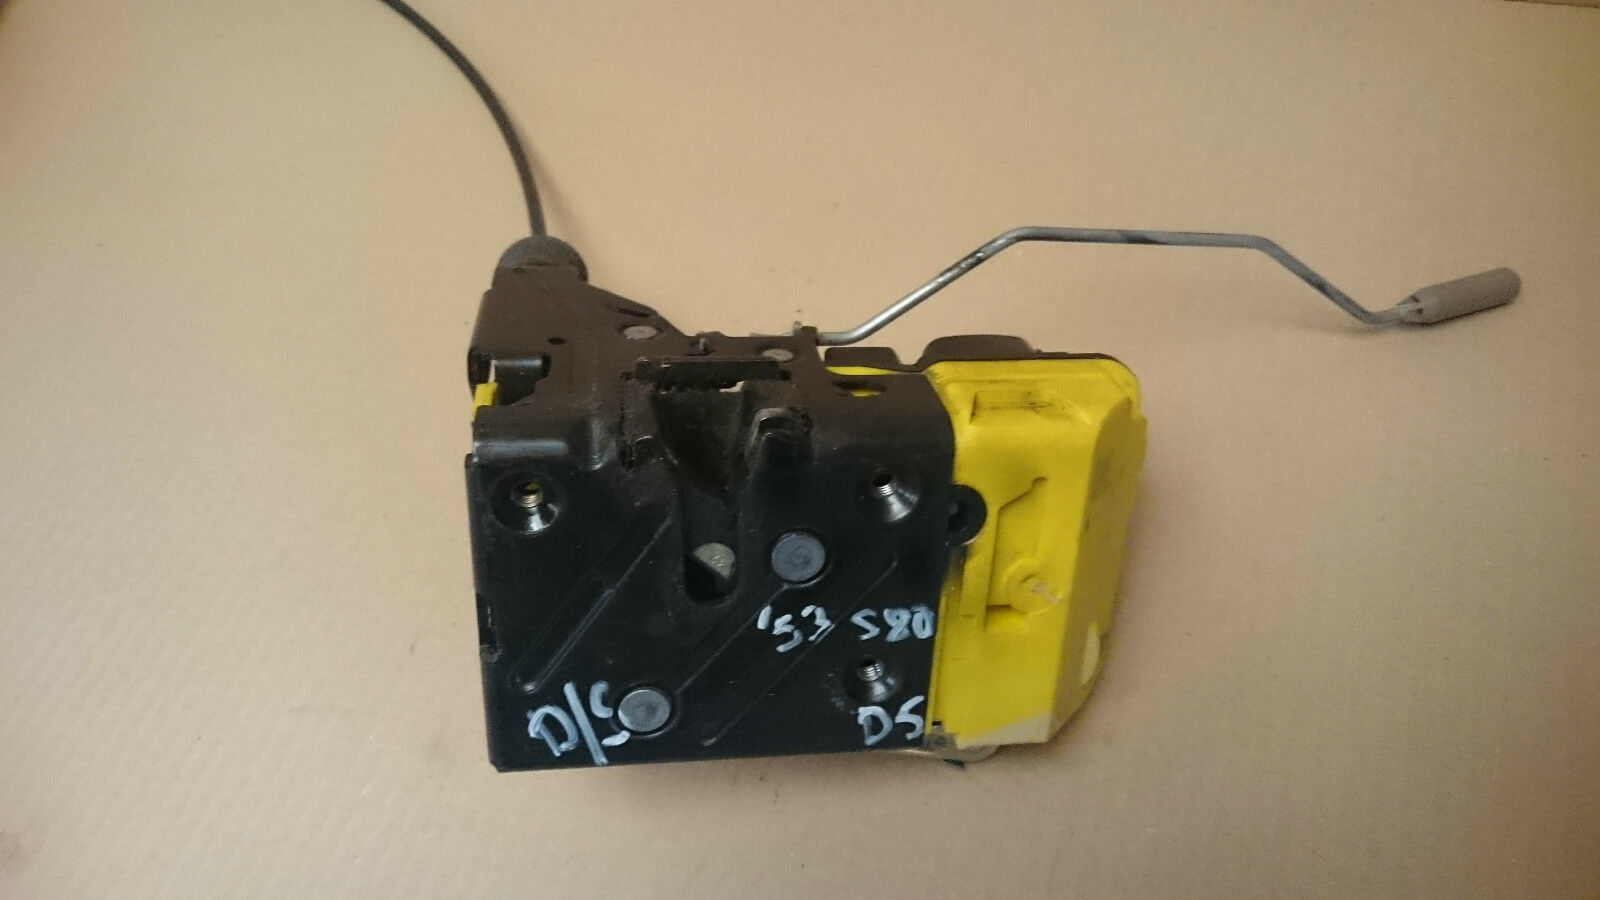 Volvo S80 24 D5 Front Driver Door Lock Mechanism 30634615 1791 2001 S40 1 Of 6only Available